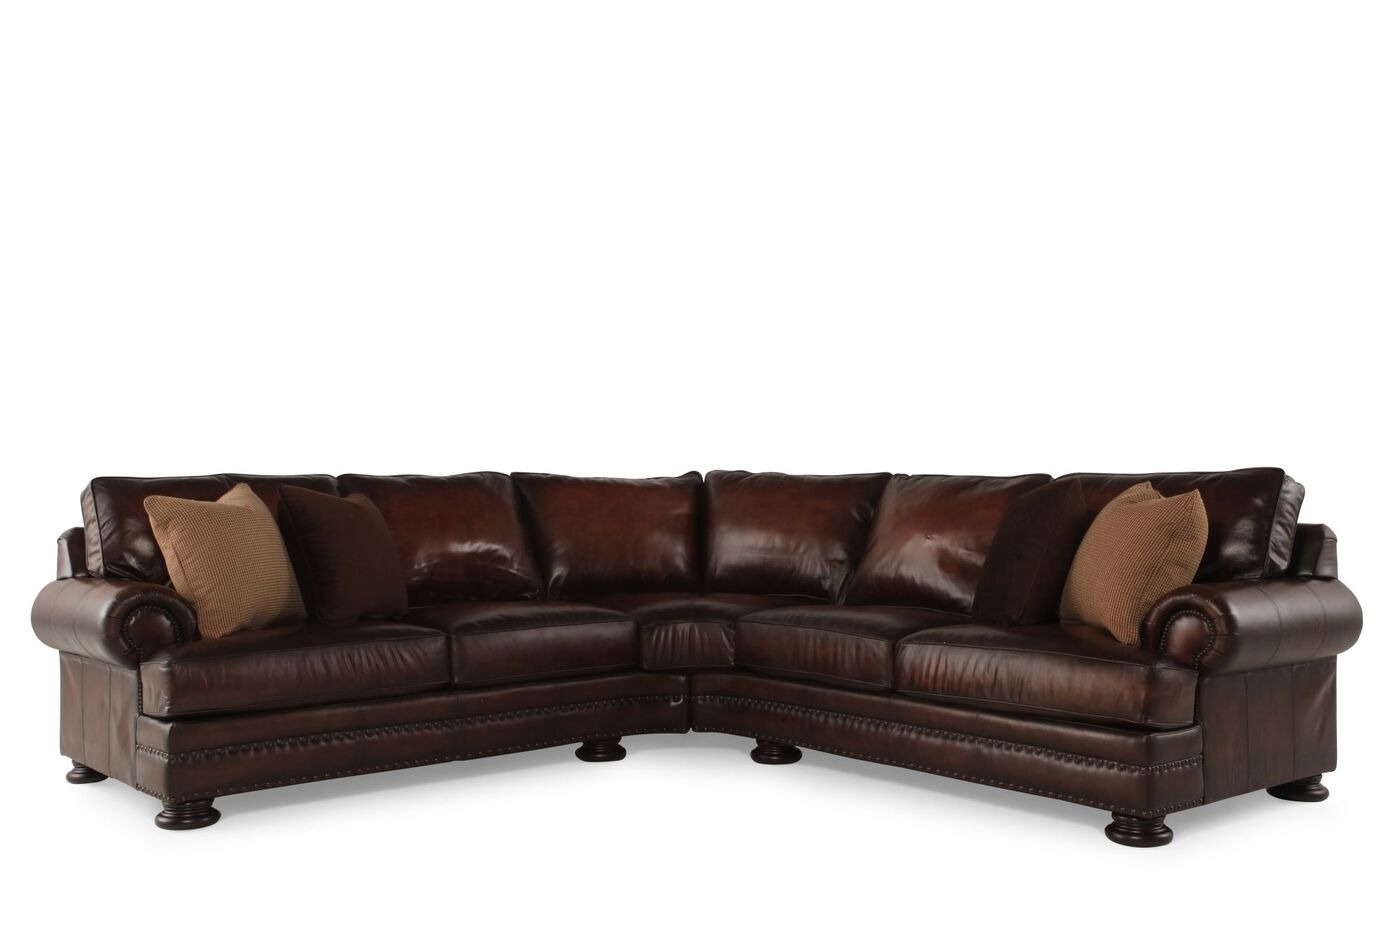 Mathis Brothers Leather Sofas Leather Rolled Arm 88 Sofa